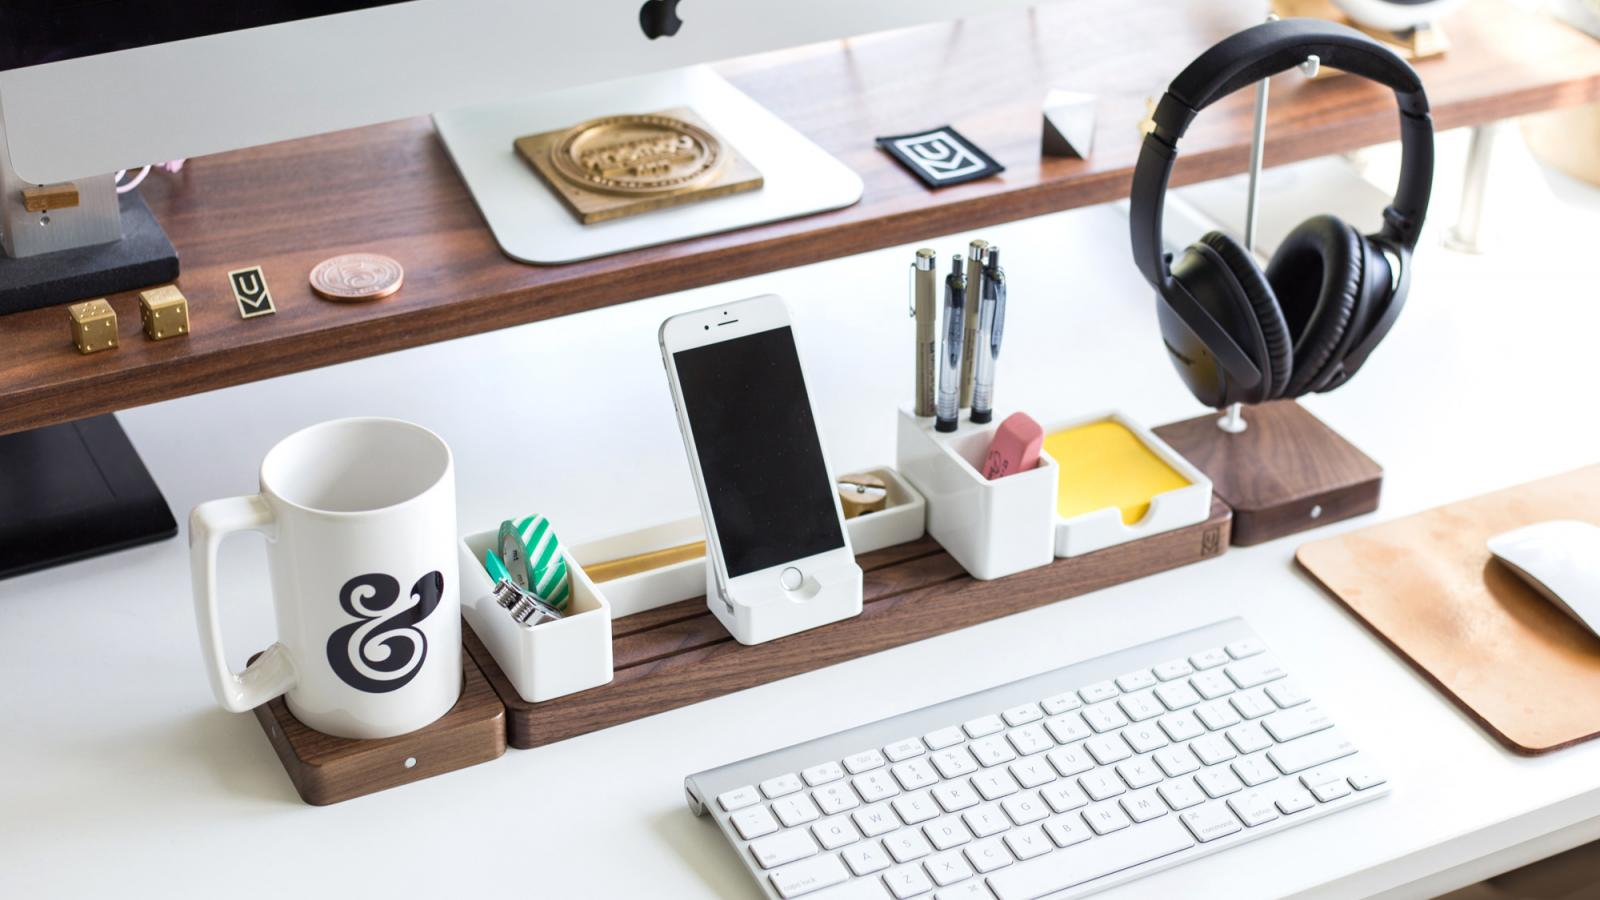 Gather by Ugmonk: Minimal & Modular, your Next Desk Organizer